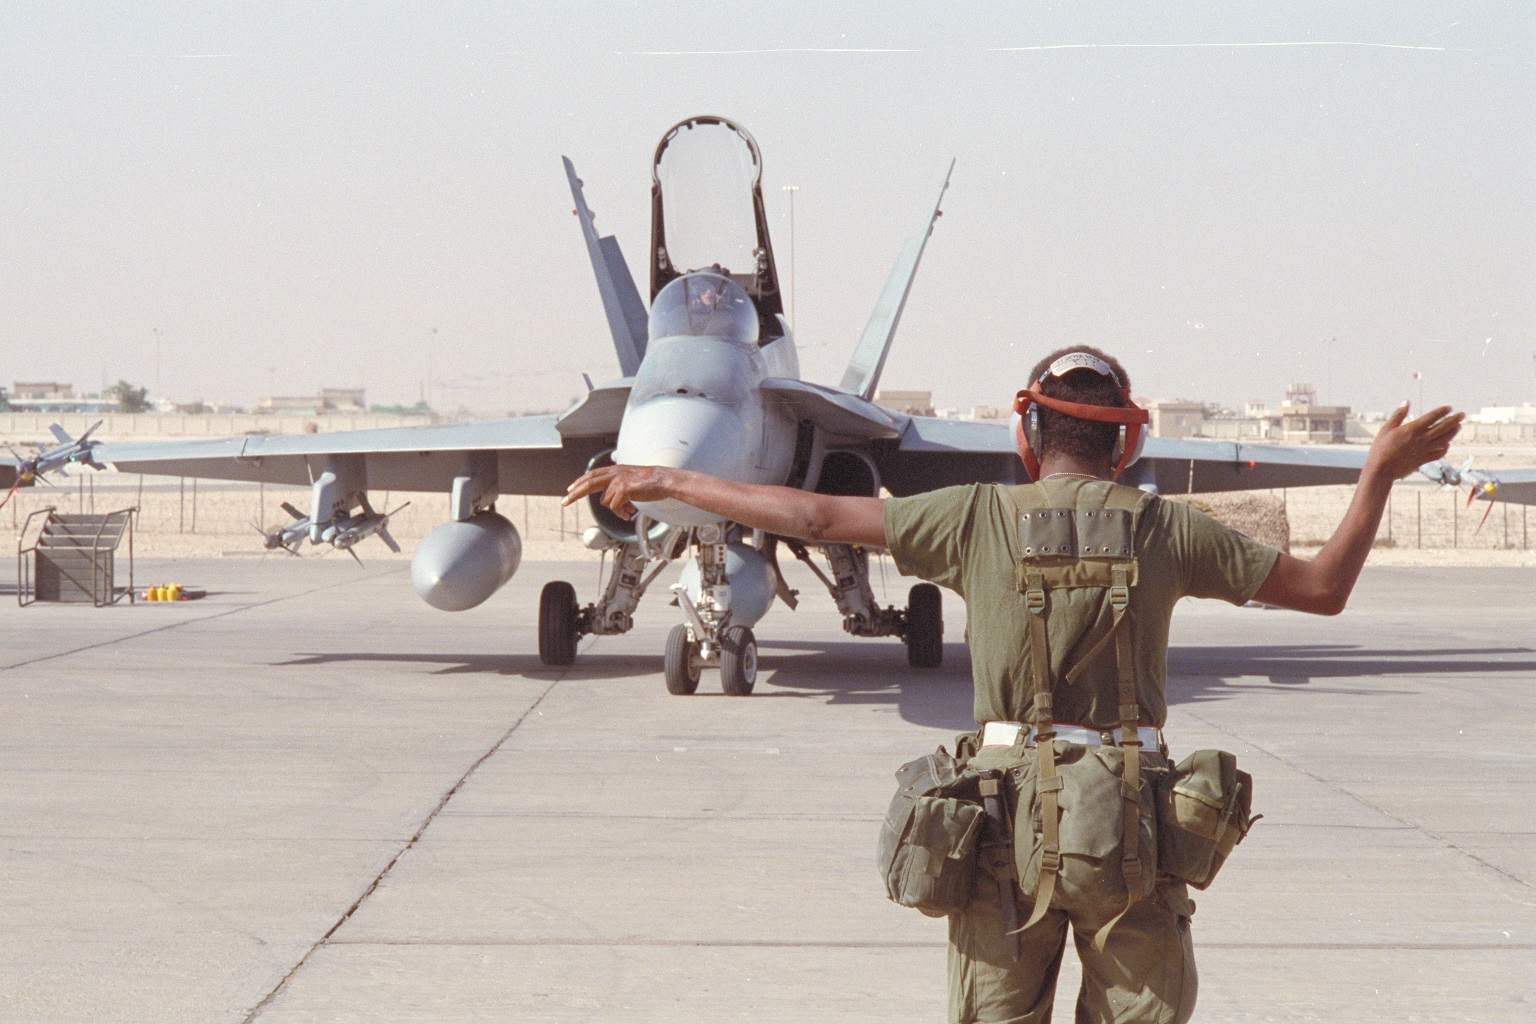 Canadian CF-18 in Qatar readying for take-off